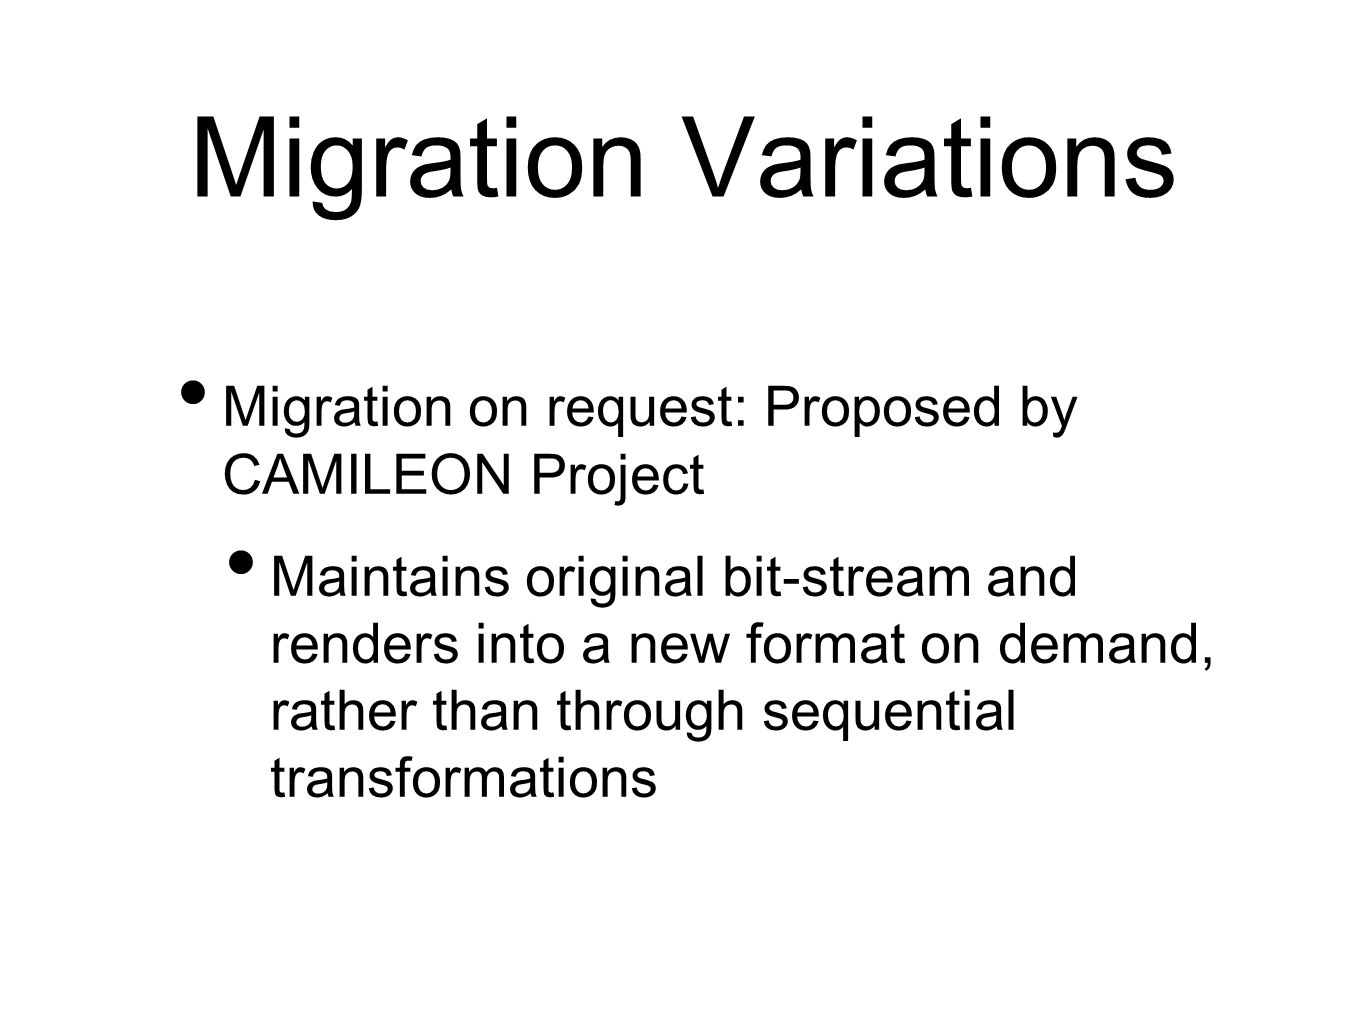 Migration Variations Migration on request: Proposed by CAMILEON Project Maintains original bit-stream and renders into a new format on demand, rather than through sequential transformations